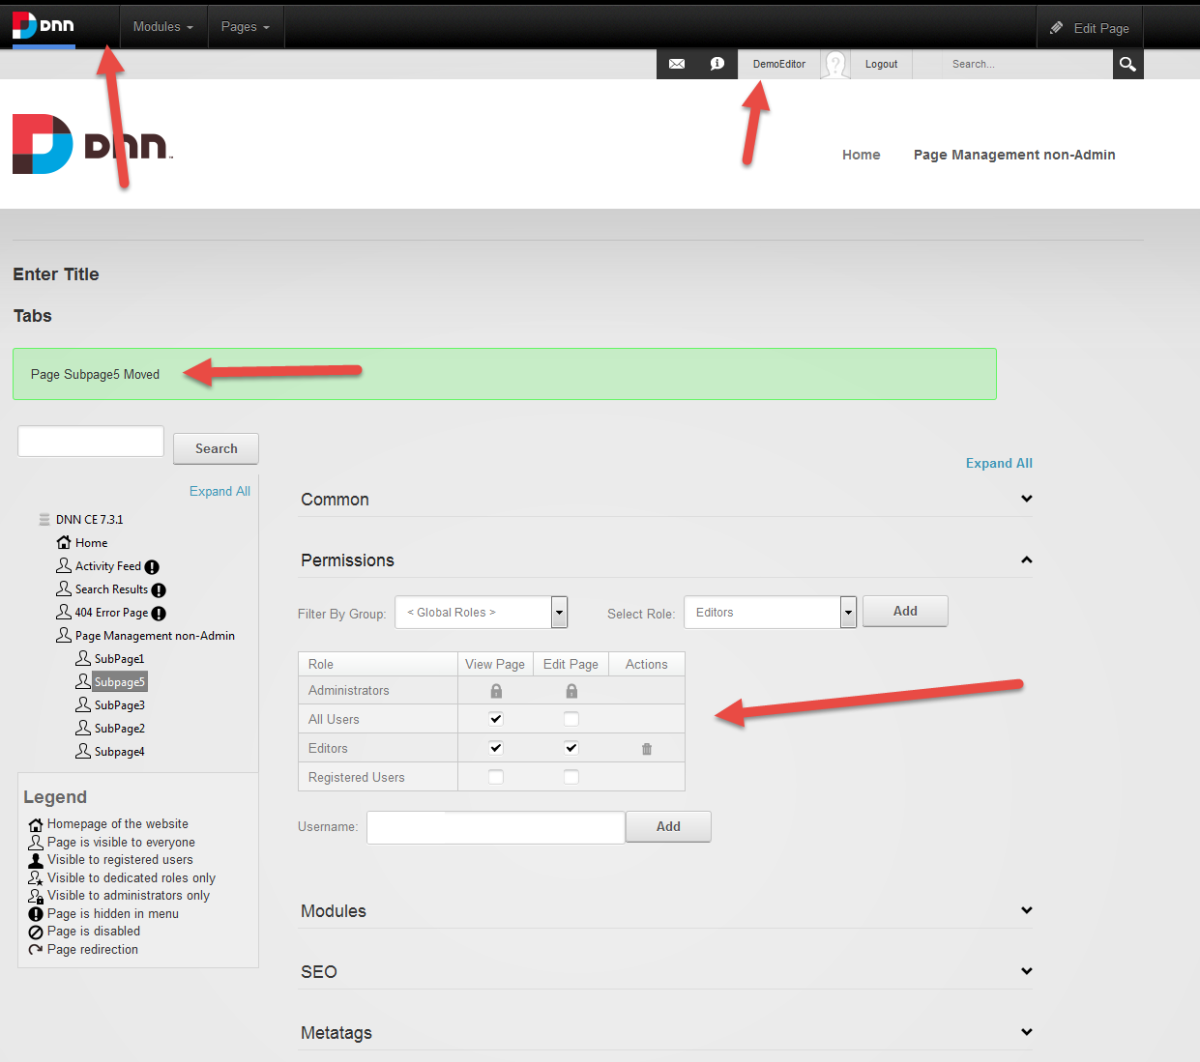 DNN Page Management for Non-Admins 2